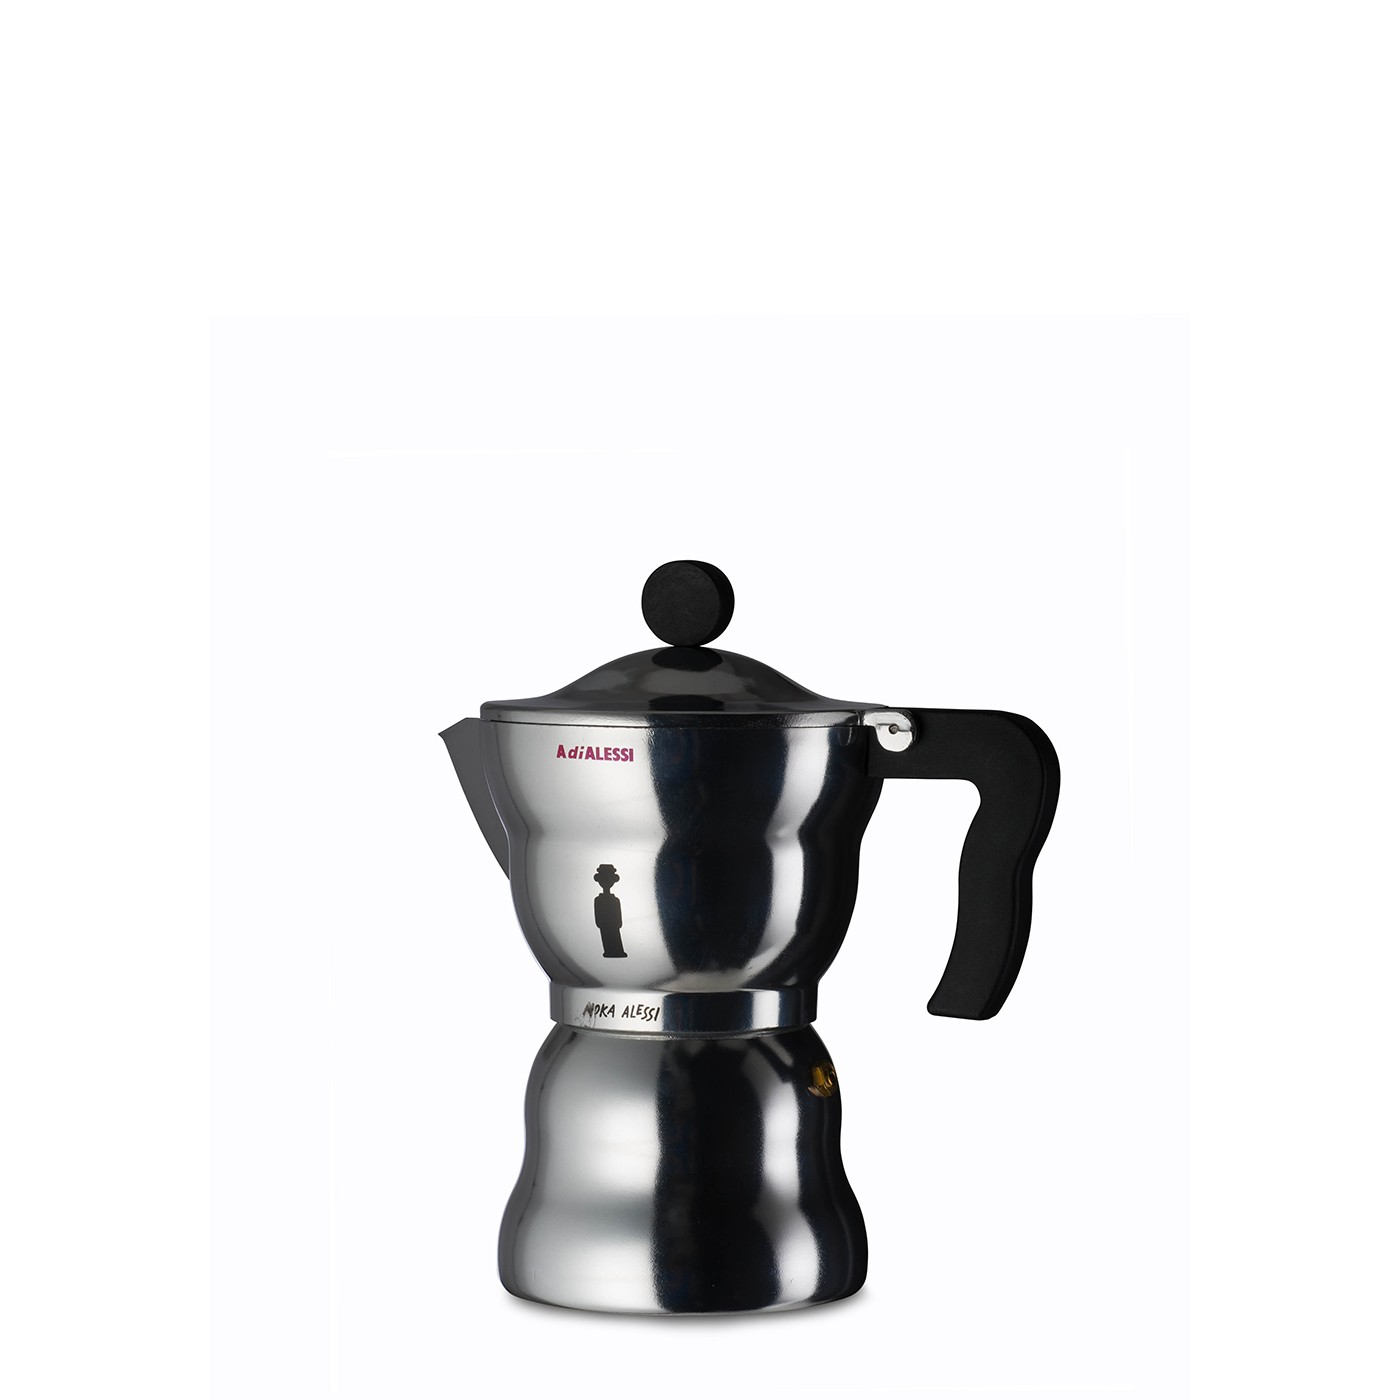 Awesome Moka Espresso Coffee Maker 3 Cups Amazing Design